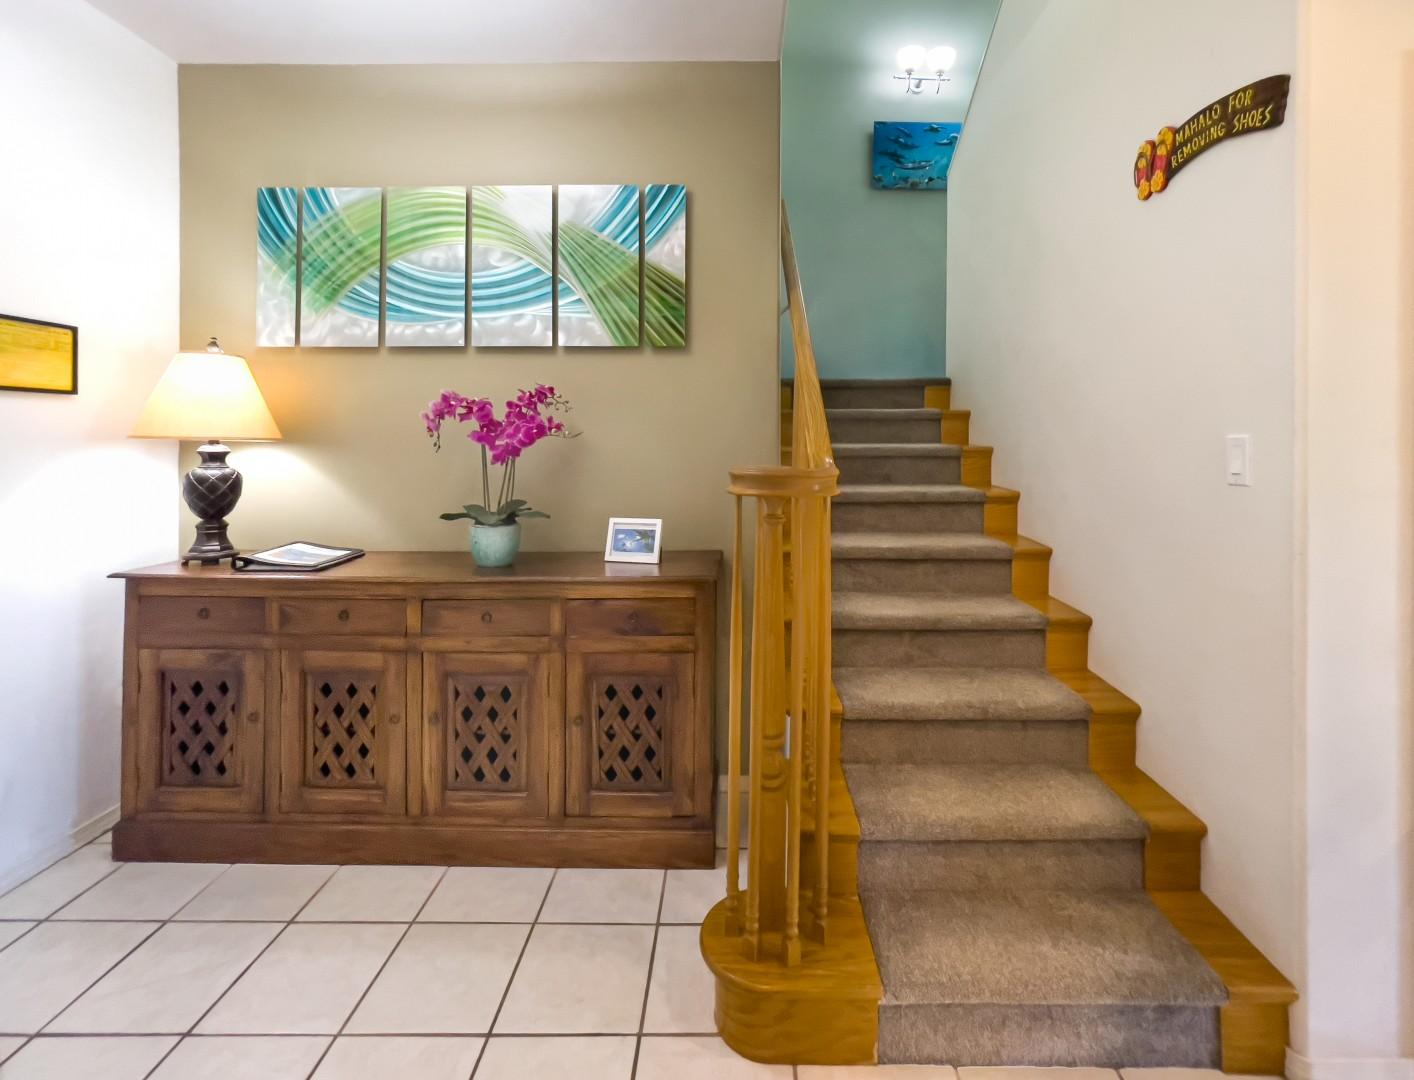 Entry Hall and Staircase to Upstairs Bedrooms